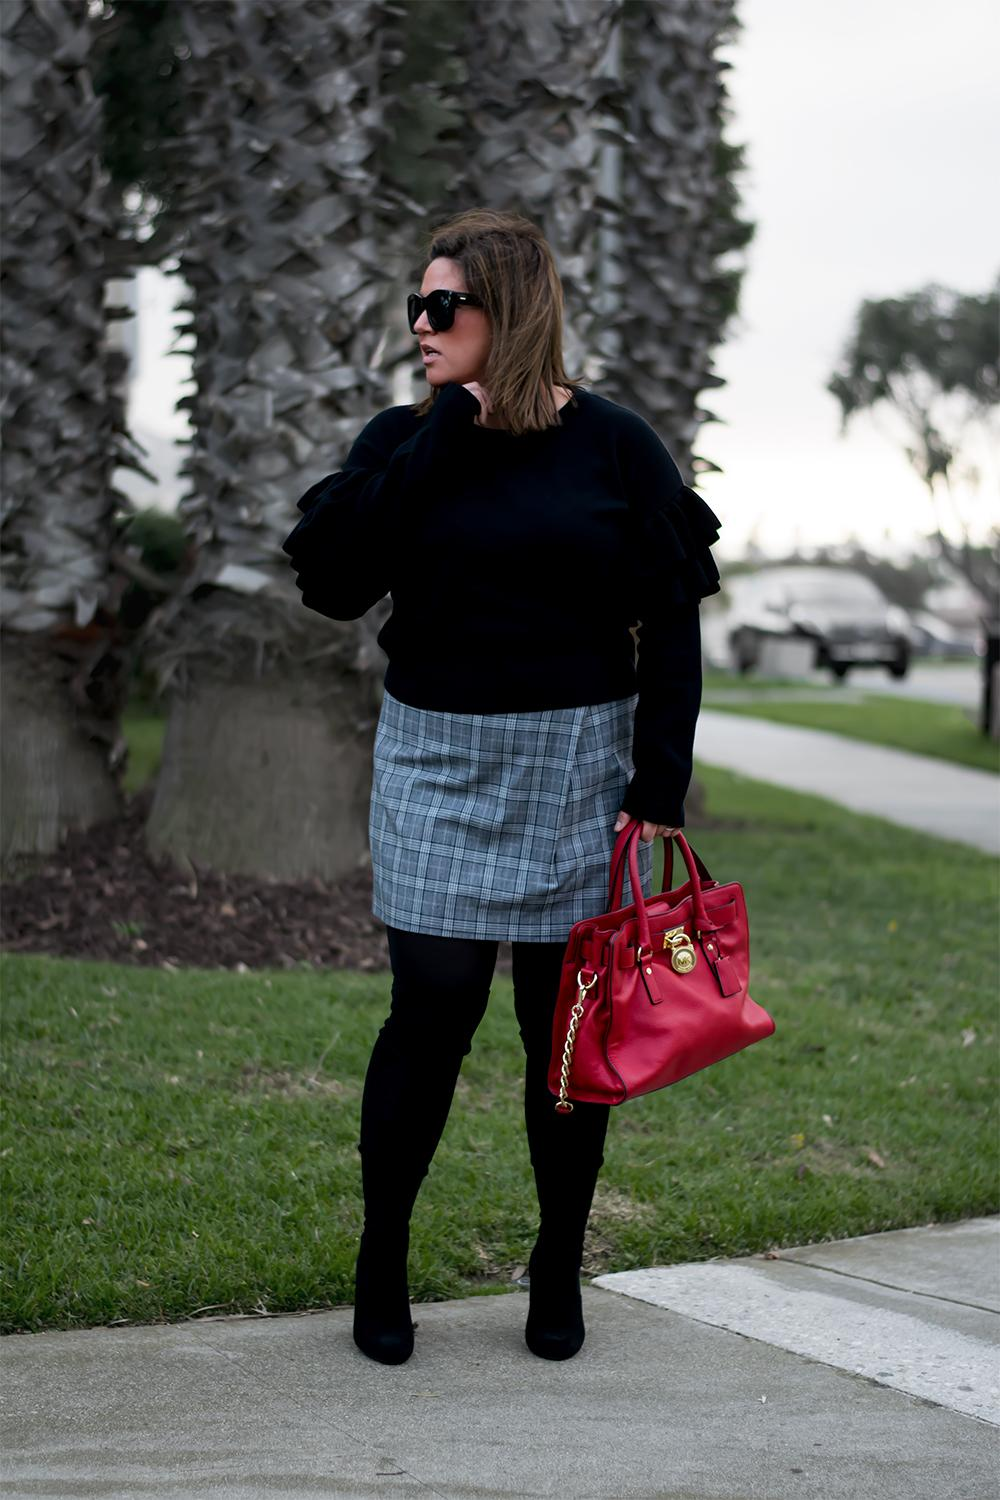 Banana-Republic-Plaid-Mini-Skirt-Outfit-The-Biggest-Trends-for-2017-Barefoot-in-LA-Fashion-Blog-Style-Ideas-0847